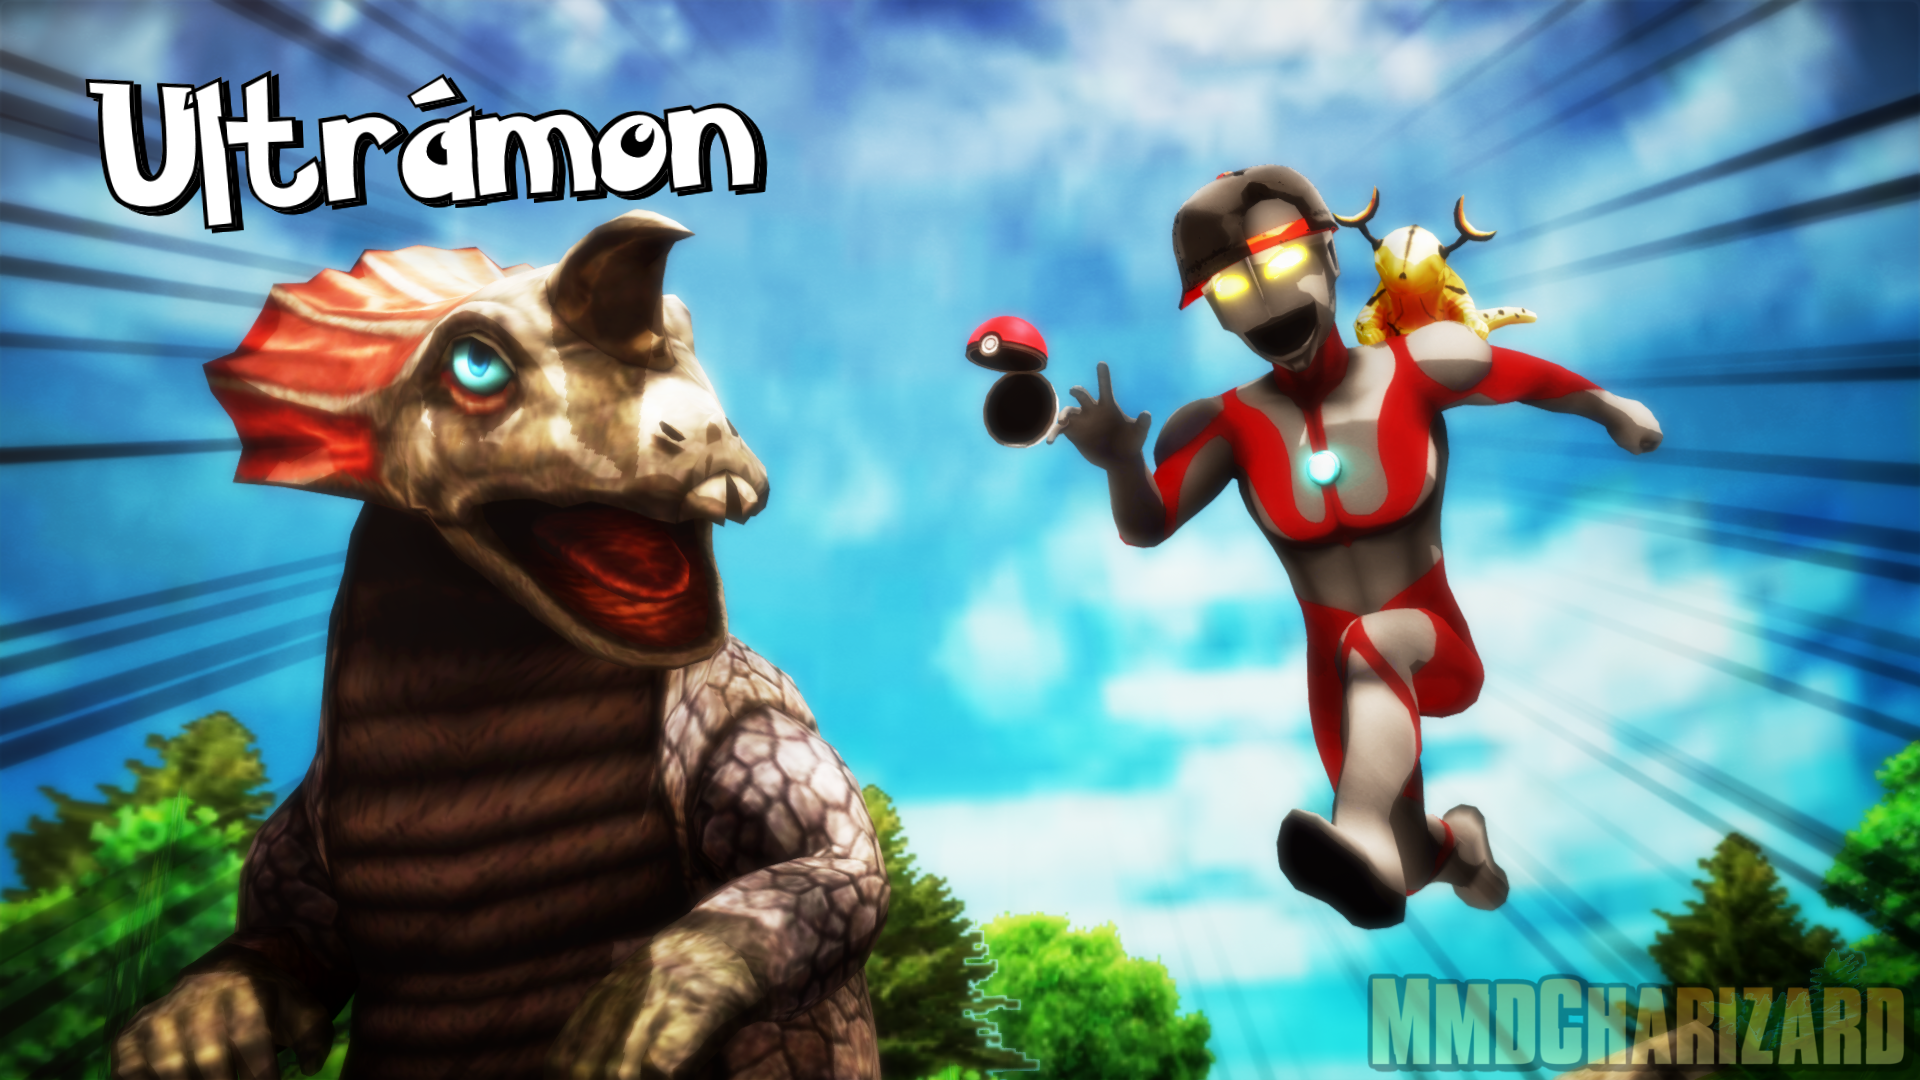 MMD - Ultramon (Ultraman X Pokemon) by MMDCharizard on